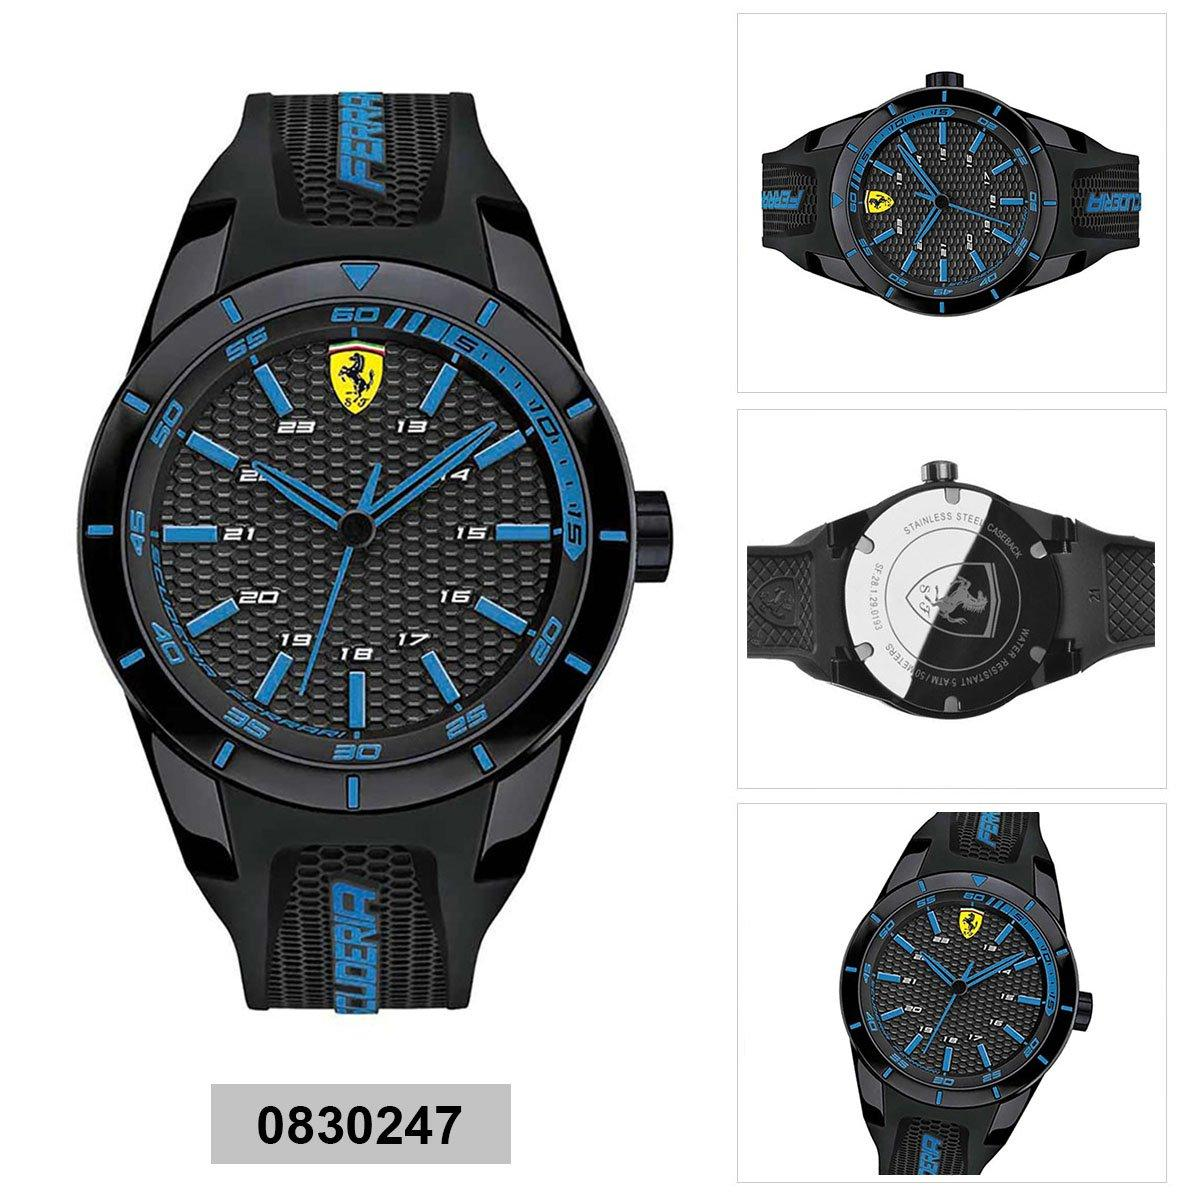 Compare Ferrari Watch Redrev Black Plastic Case Rubber Strap Mens 0830247